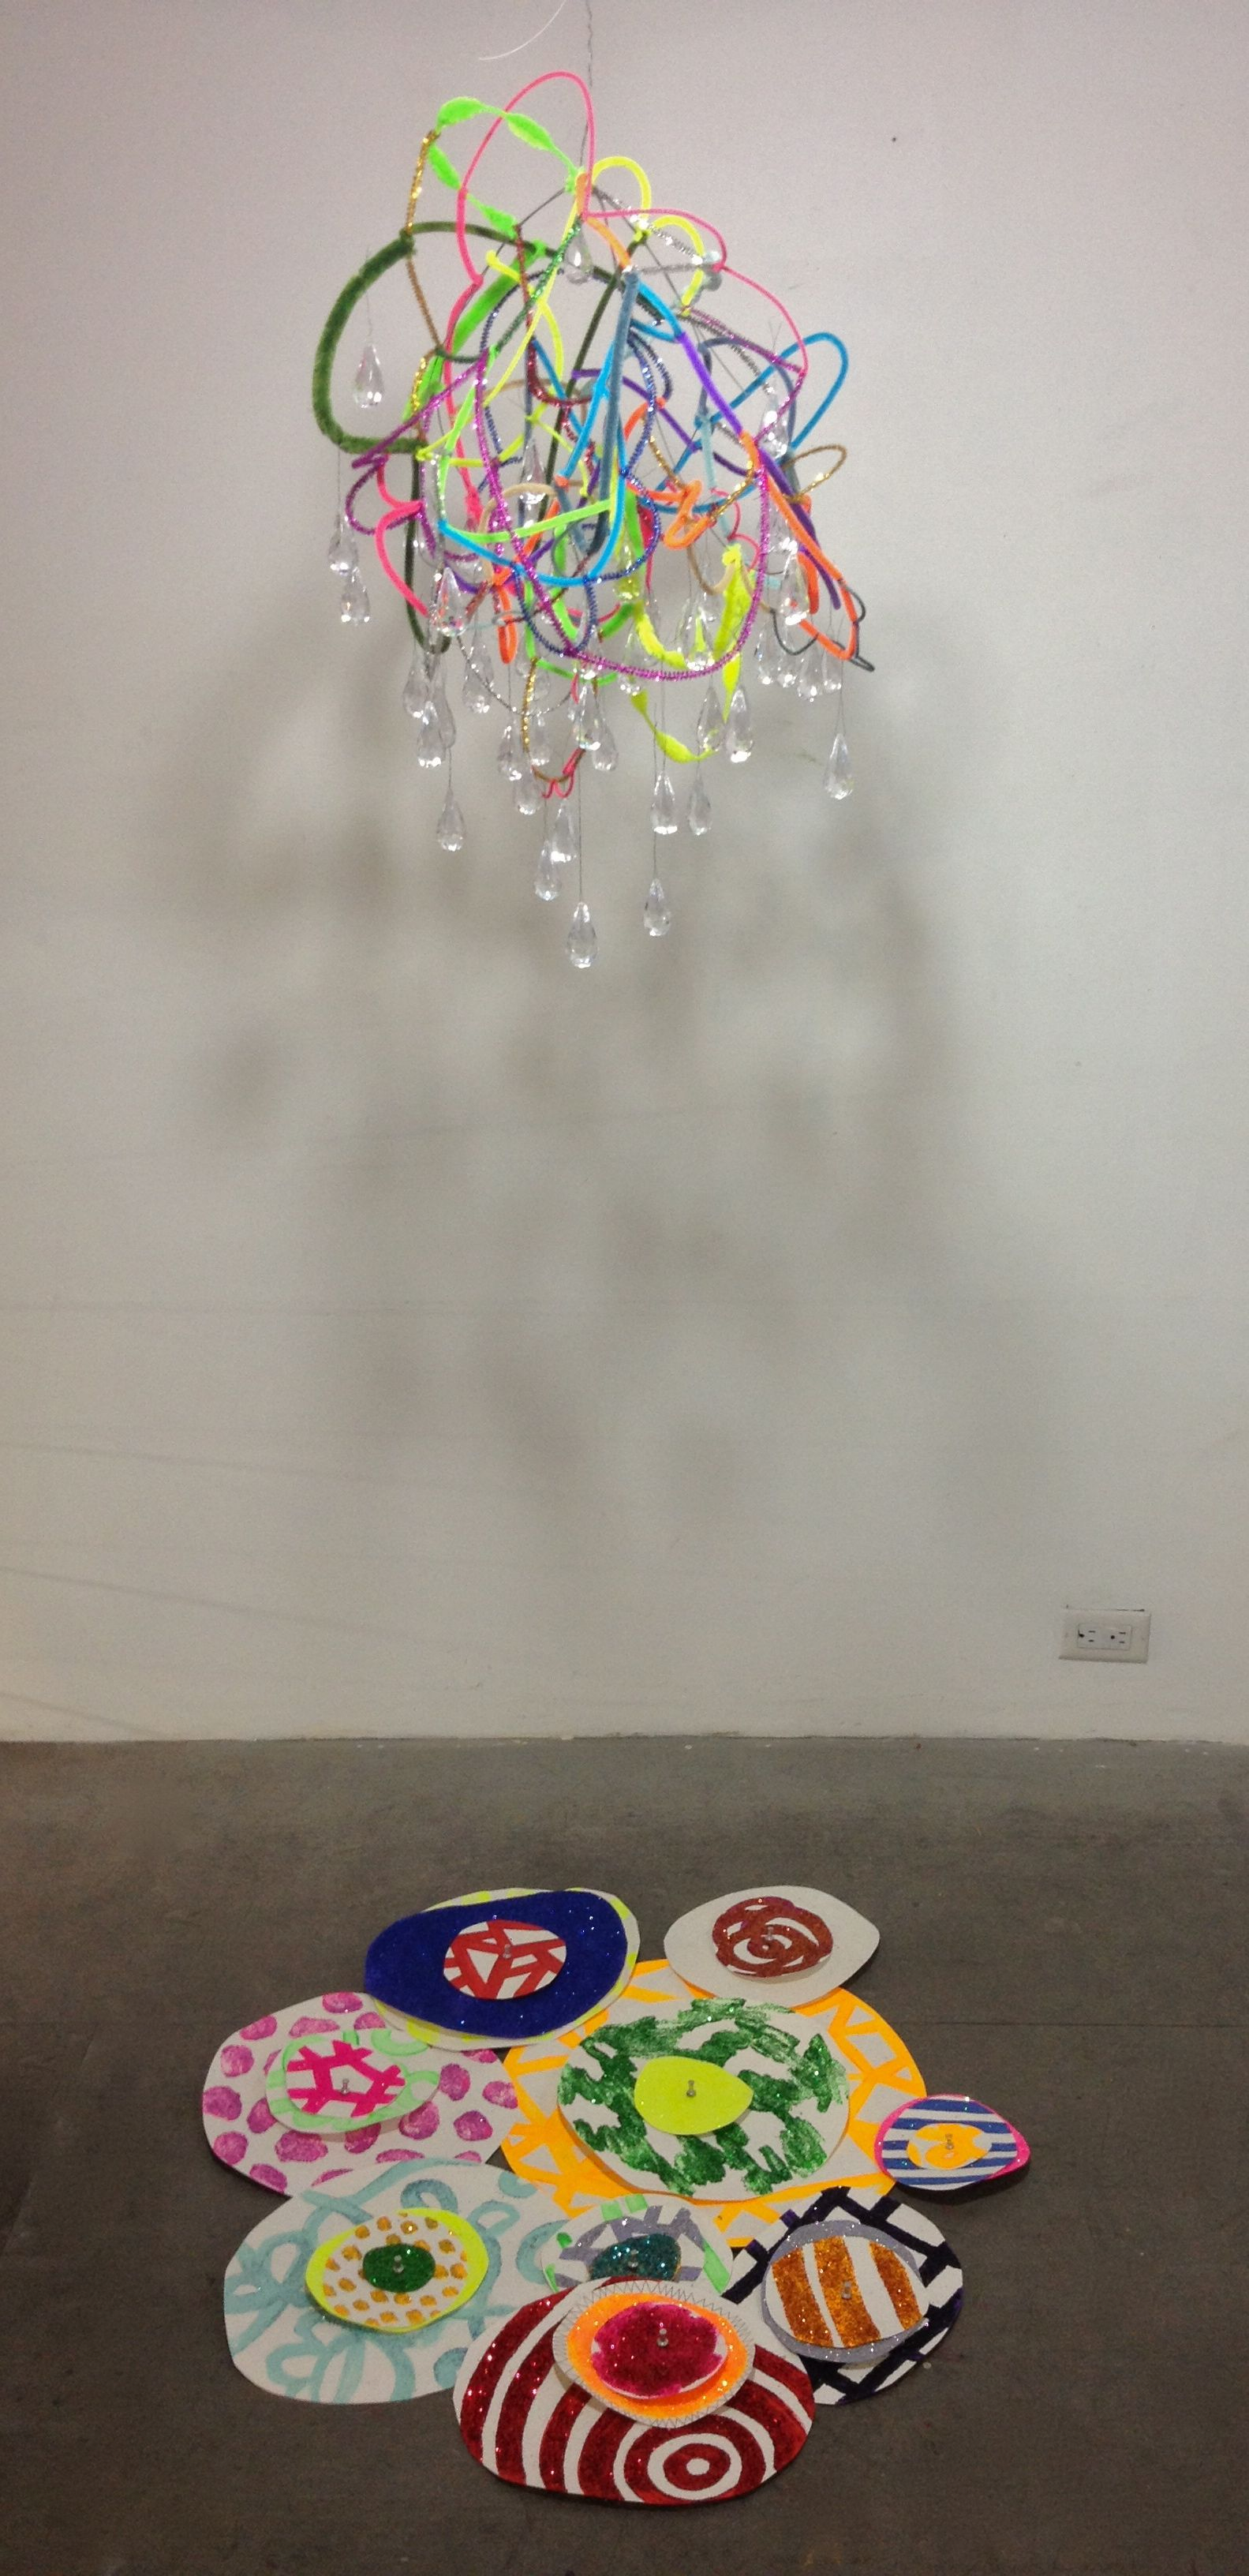 colorful installation mobile cloud over glittery floor drips